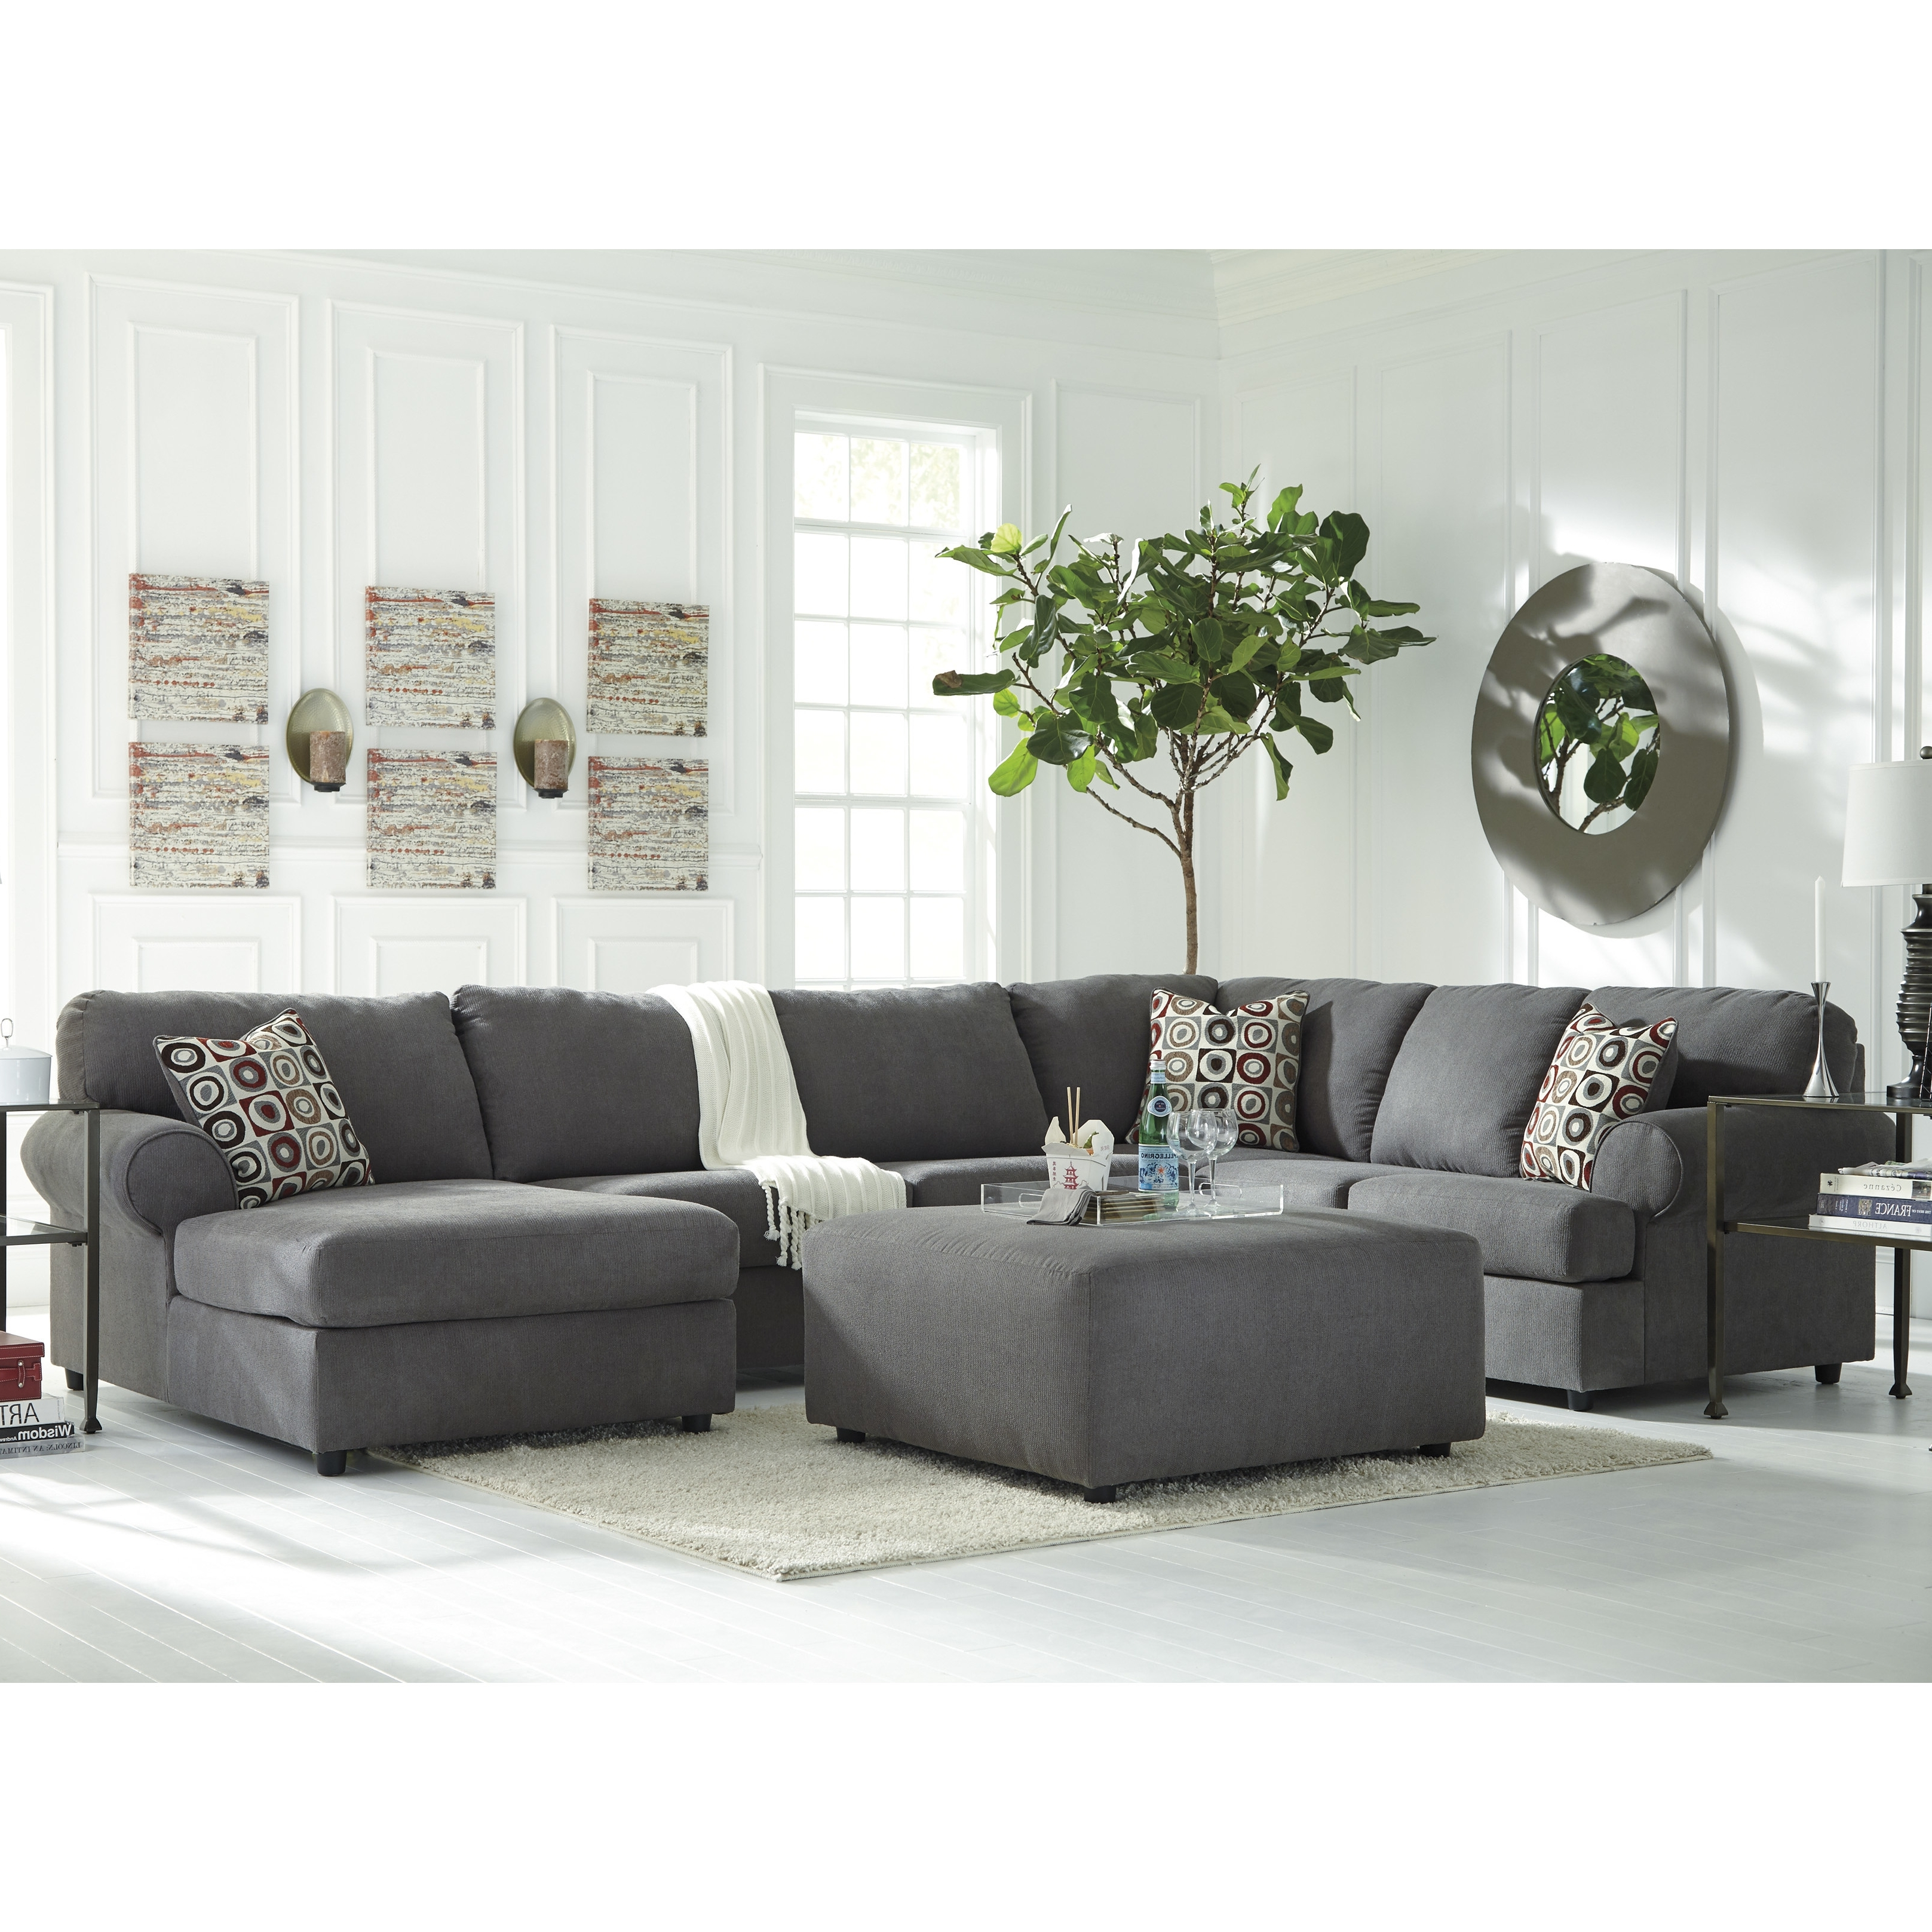 Sellersville Reversible Sectional (View 13 of 15)